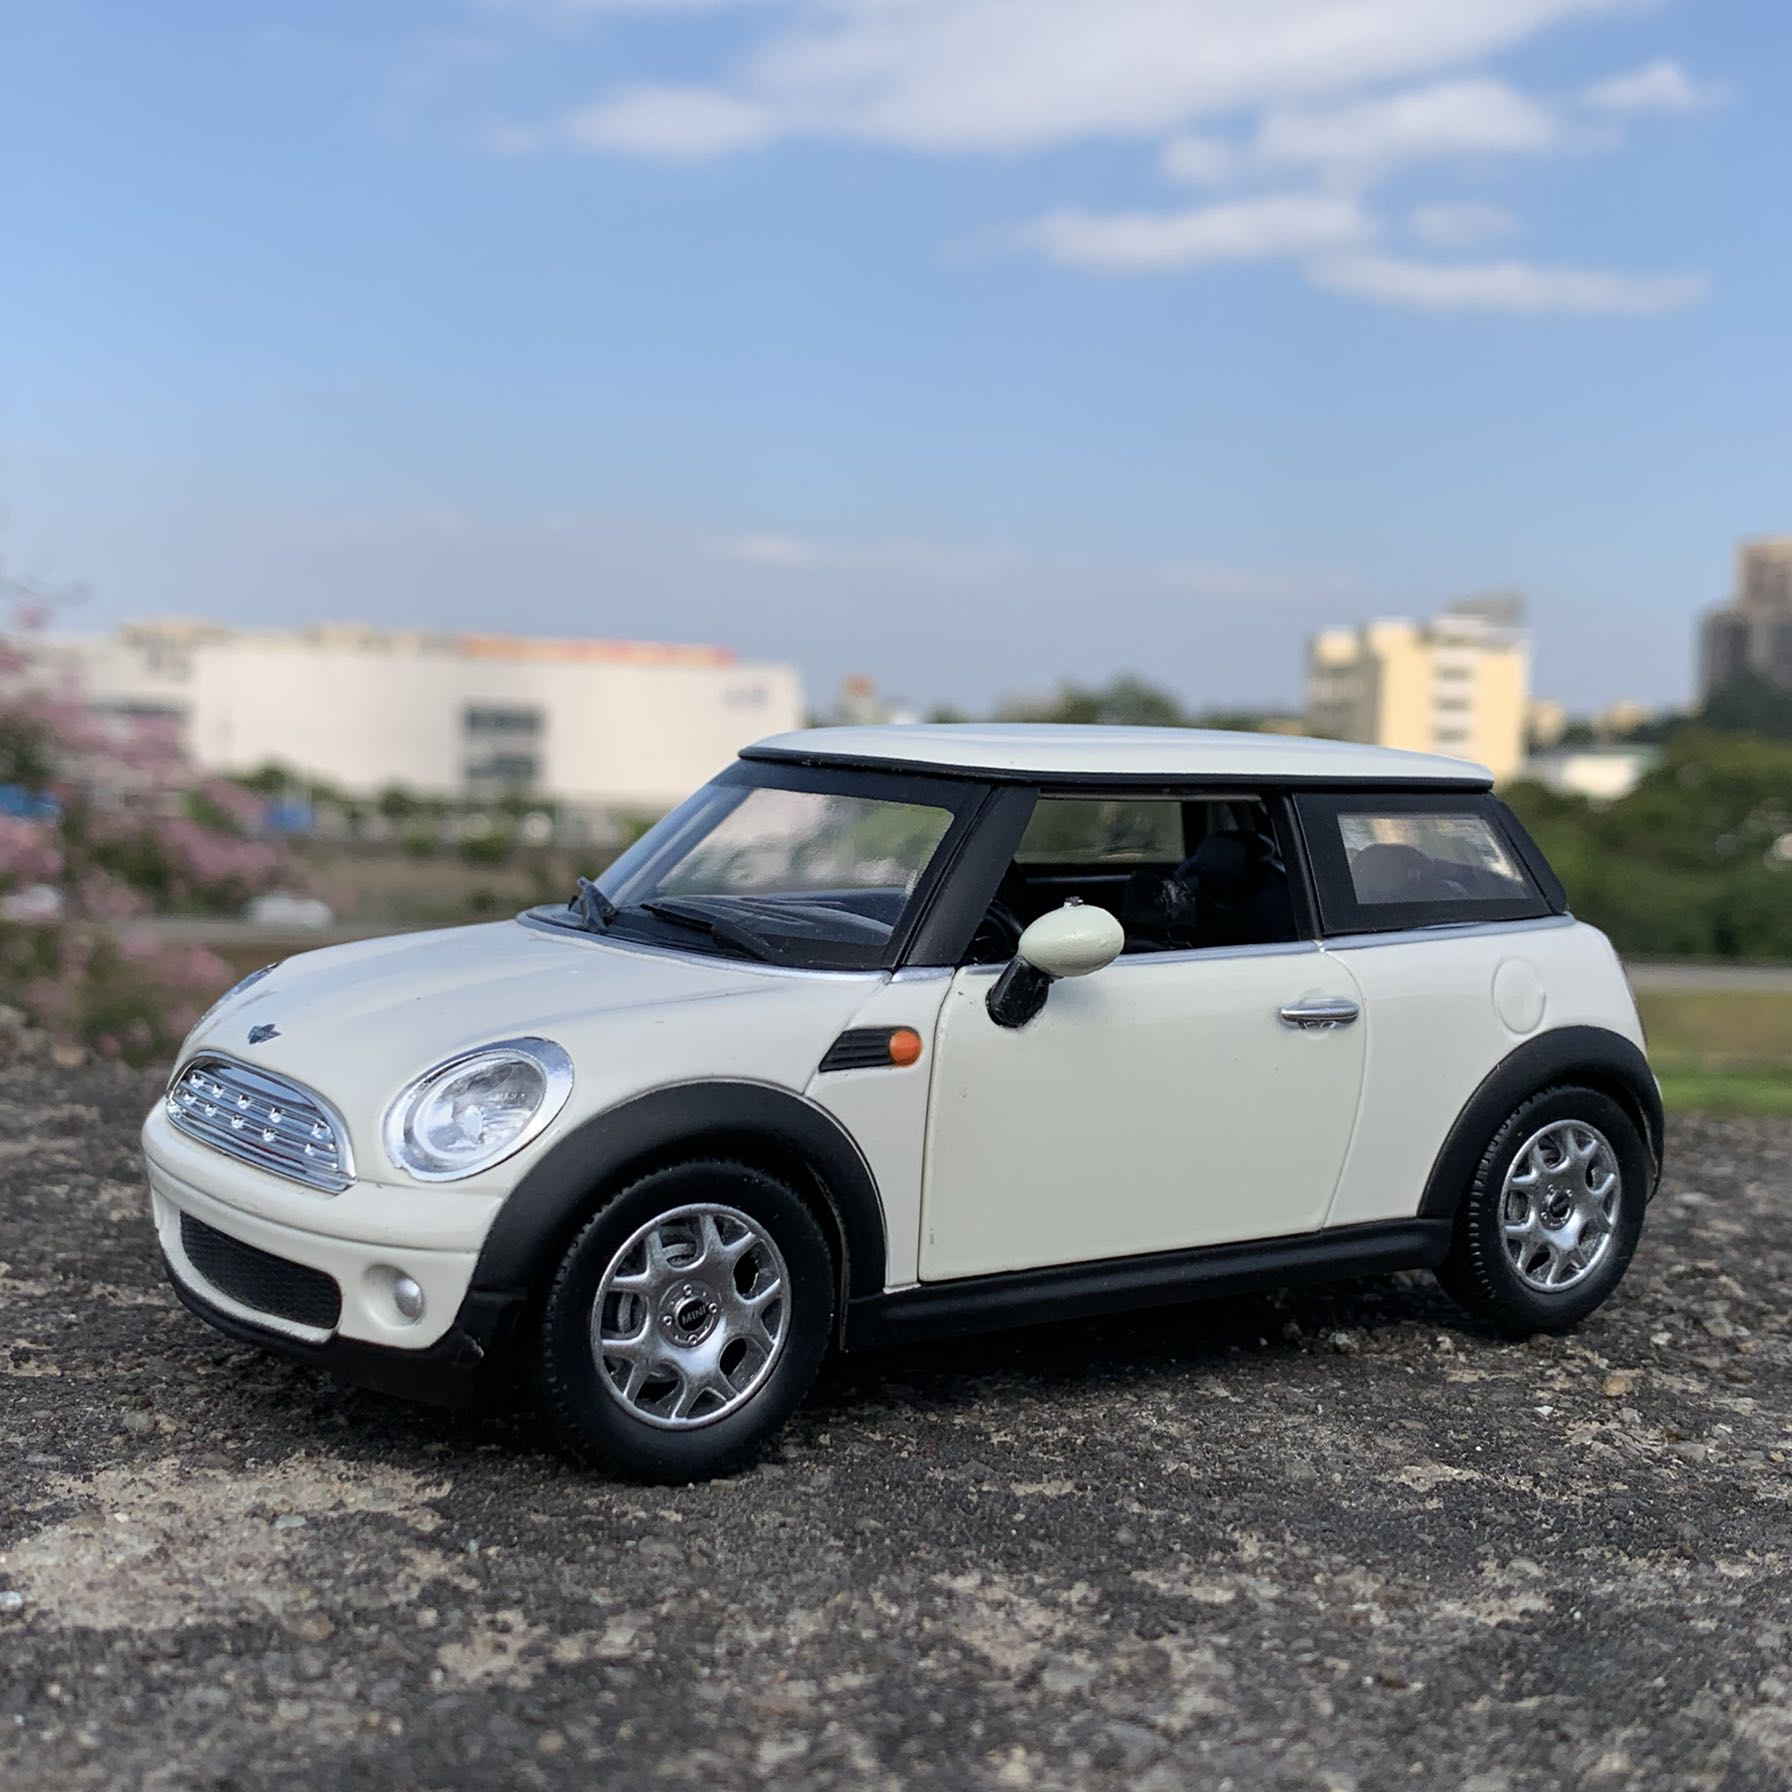 Newray 1/24 Scale Classic Car Model Mini Cooper Diecast Metal Car Model Toy For Collection,Gift,Kids